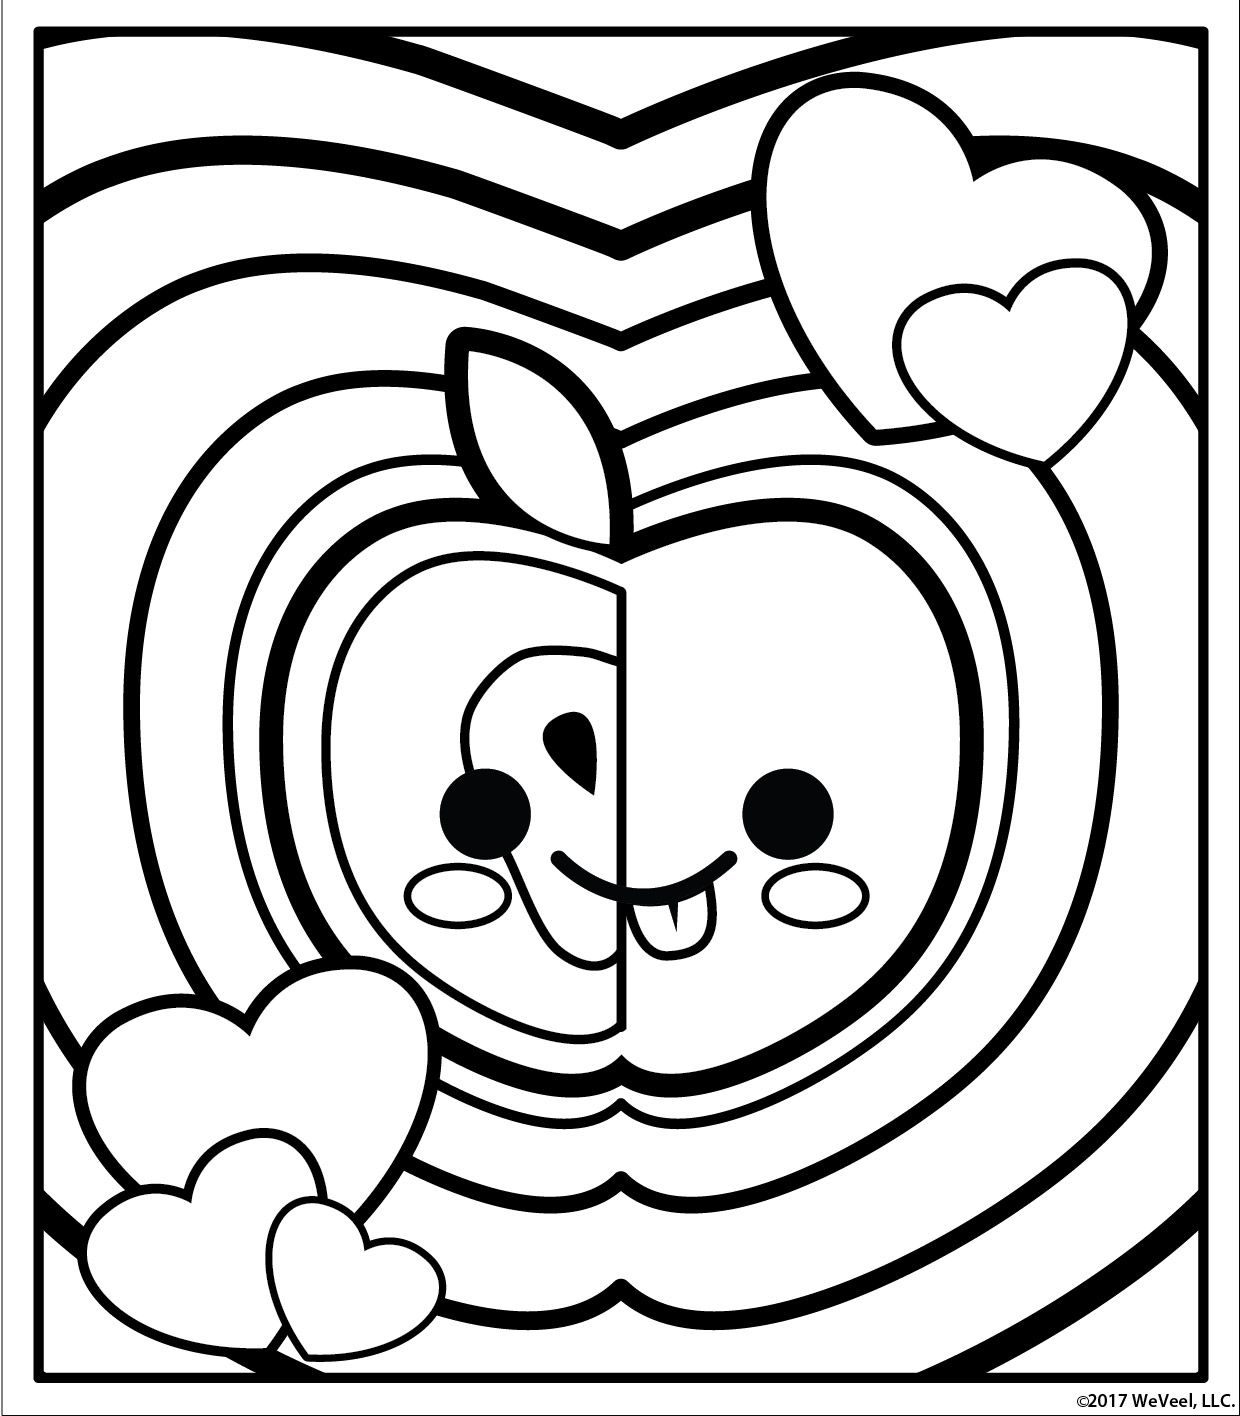 Free Printable Coloring Pages At Scentos Com Cute Girl Coloring Pages To Download And Print F Coloring Pages For Girls Cute Coloring Pages Apple Coloring Pages